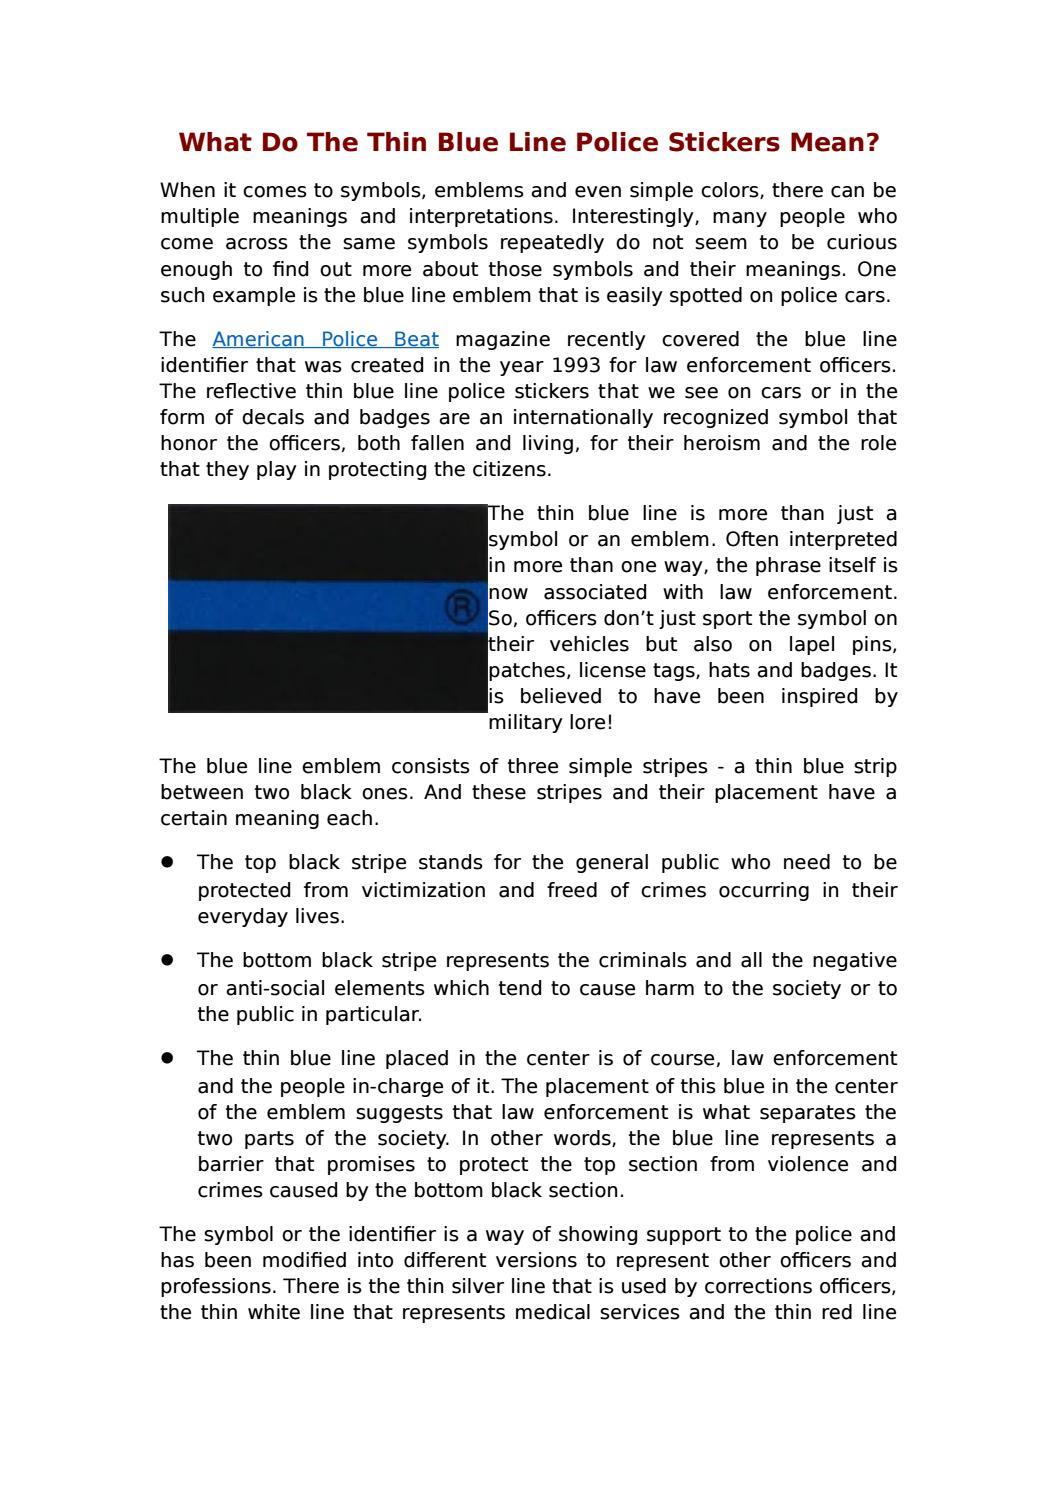 Medical symbols and meaning images symbol and sign ideas what do the thin blue line police stickers mean by peterabel issuu buycottarizona buycottarizona